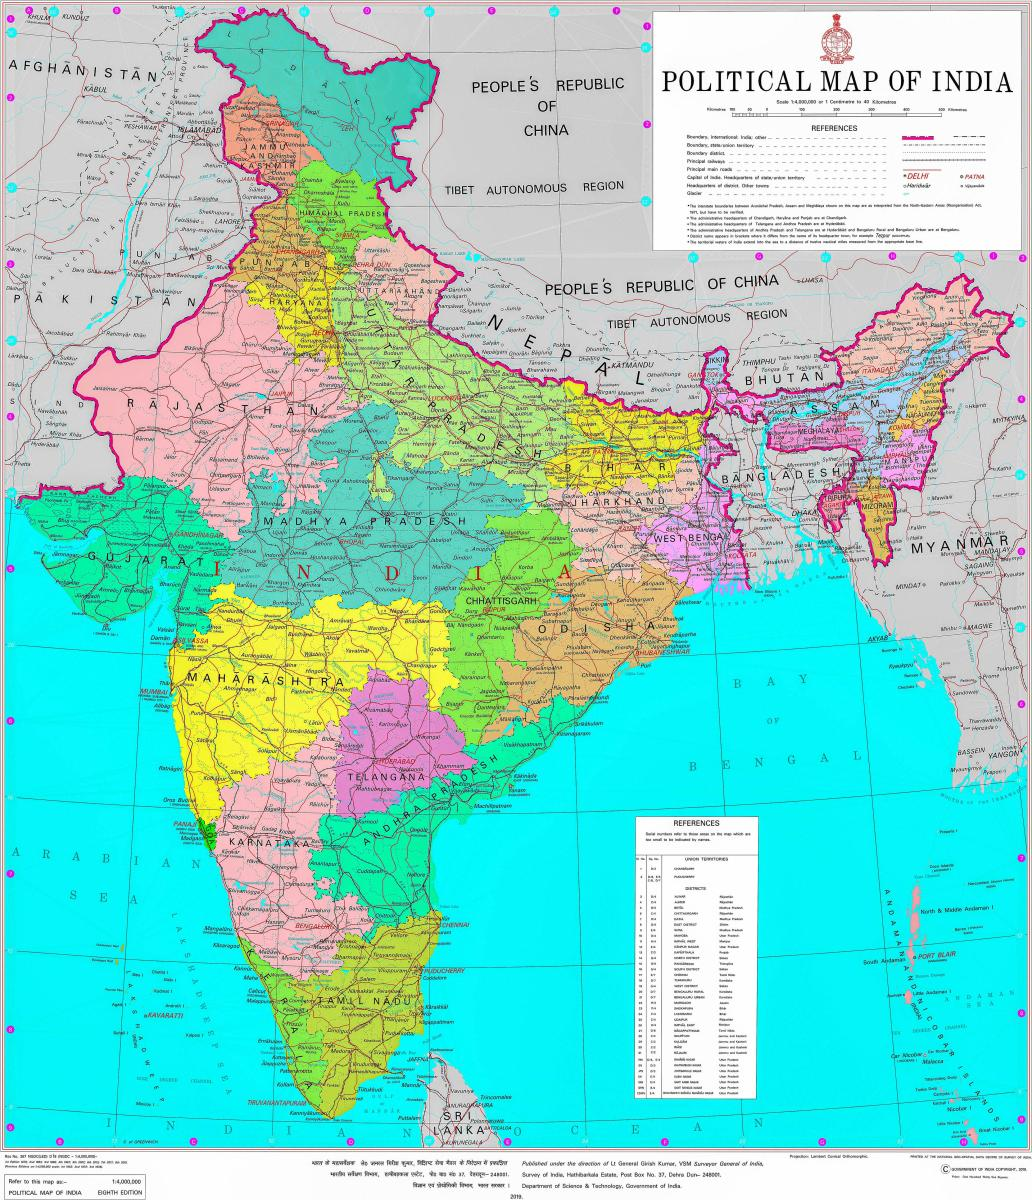 picture of indian map Nepal Objects To Kalapani S Inclusion As Part Of India In New Maps picture of indian map